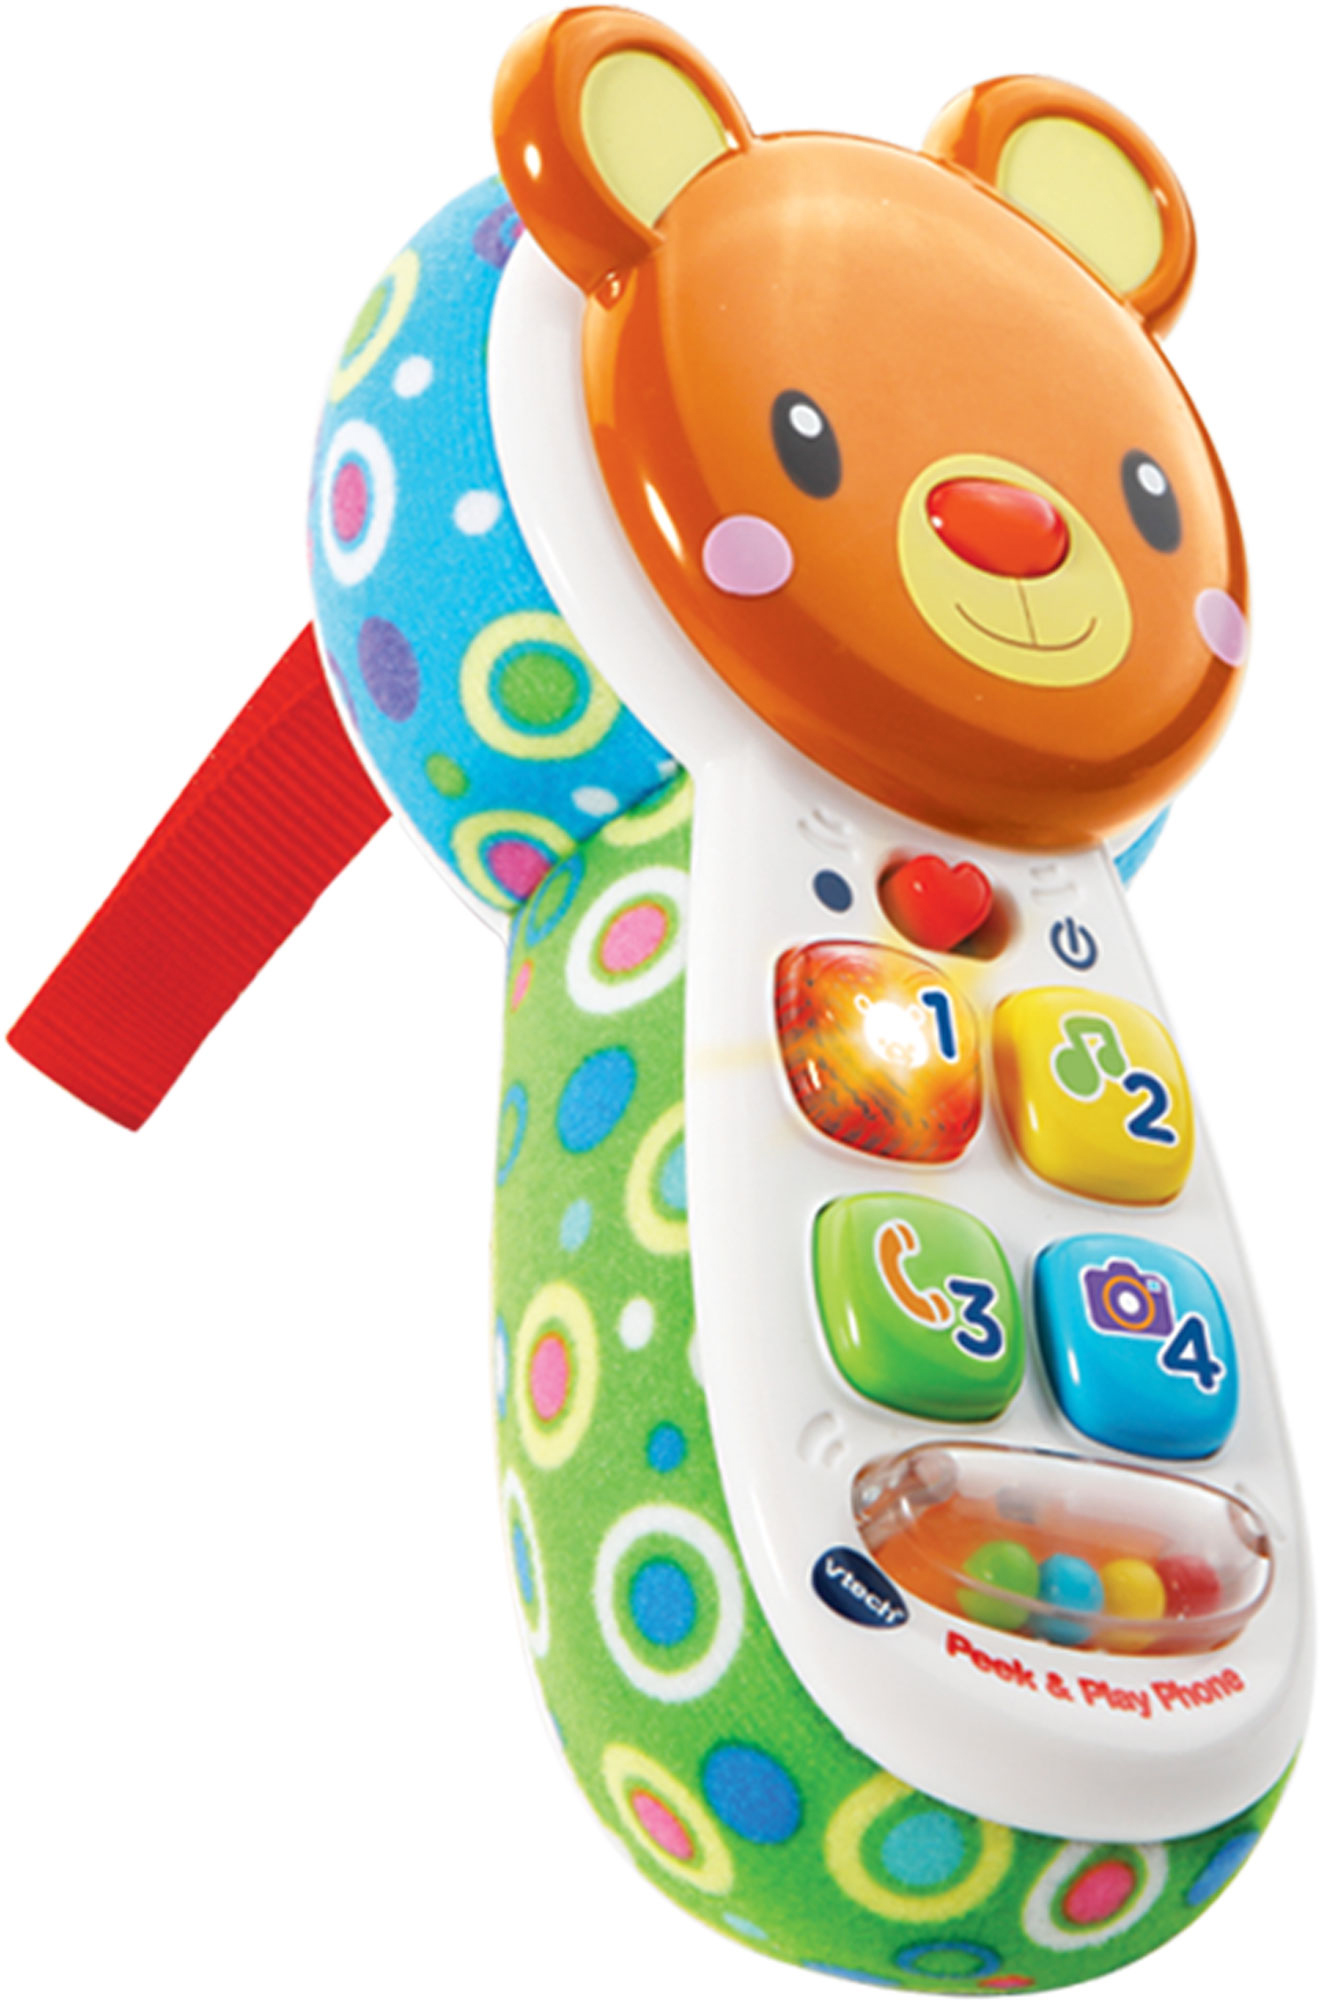 VTech Baby Peek & Play Phone Electronic Musical Education